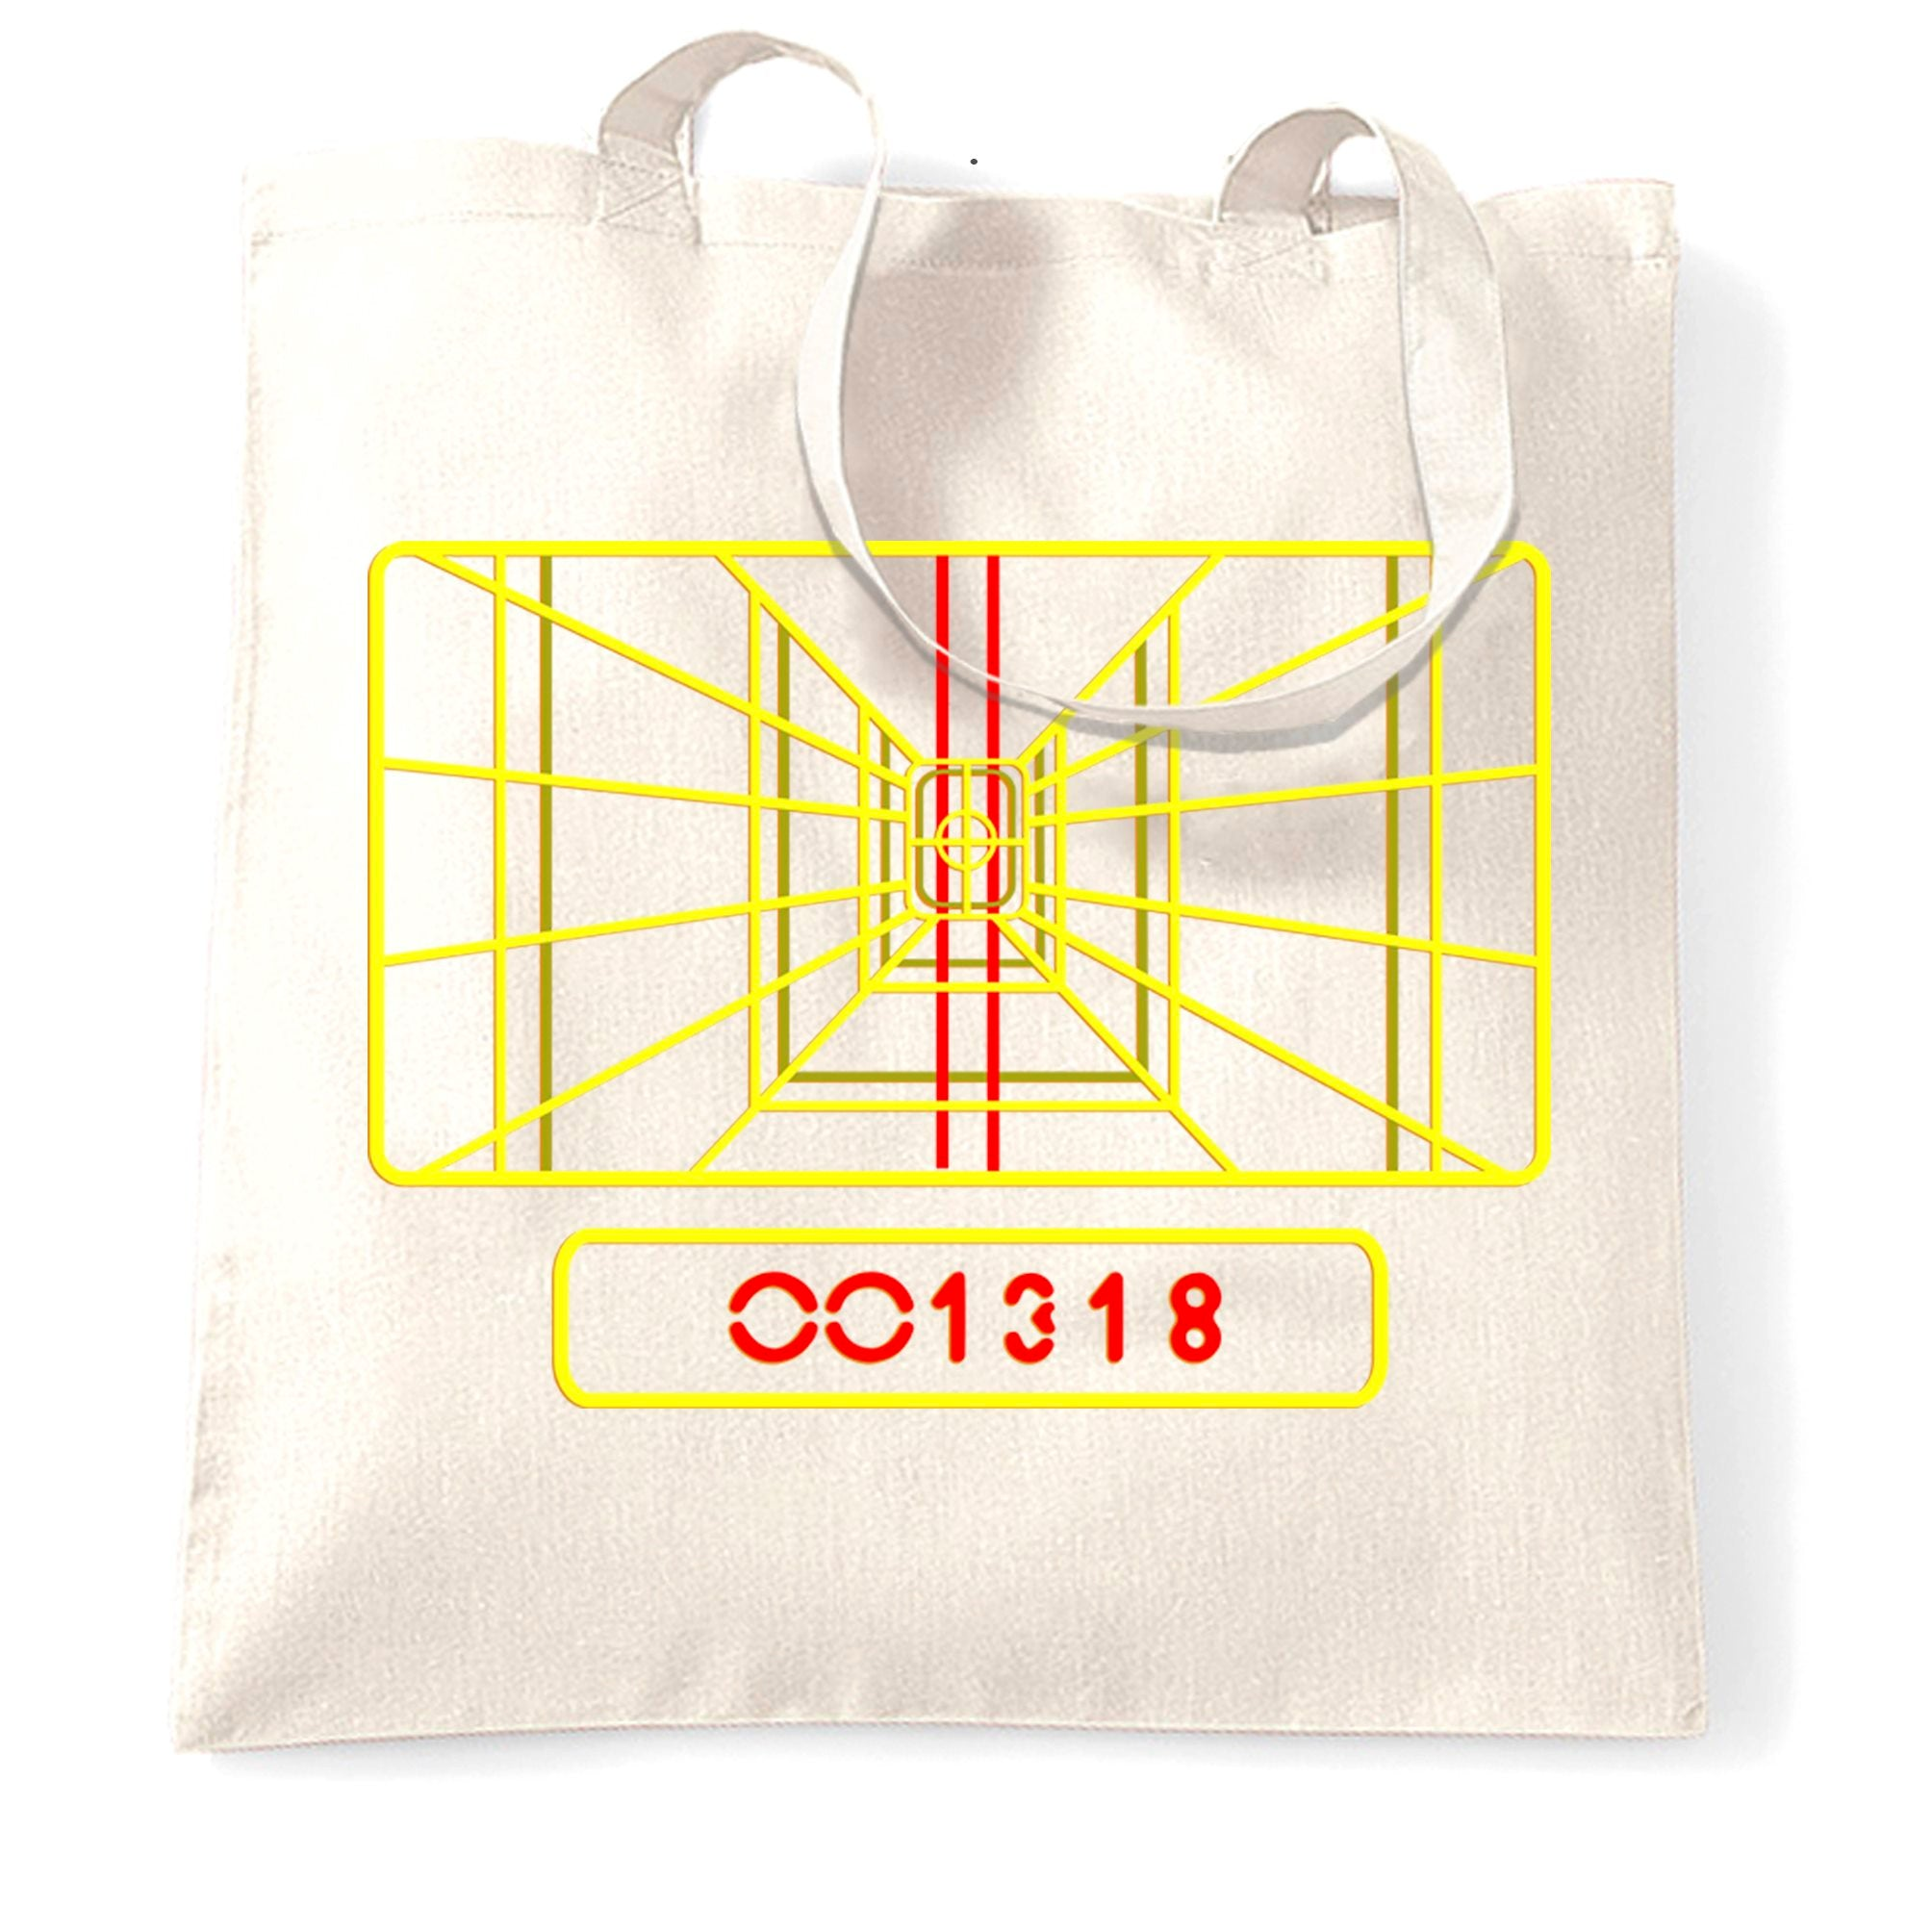 Luke's Almost There Targeting Computer Tote Bag